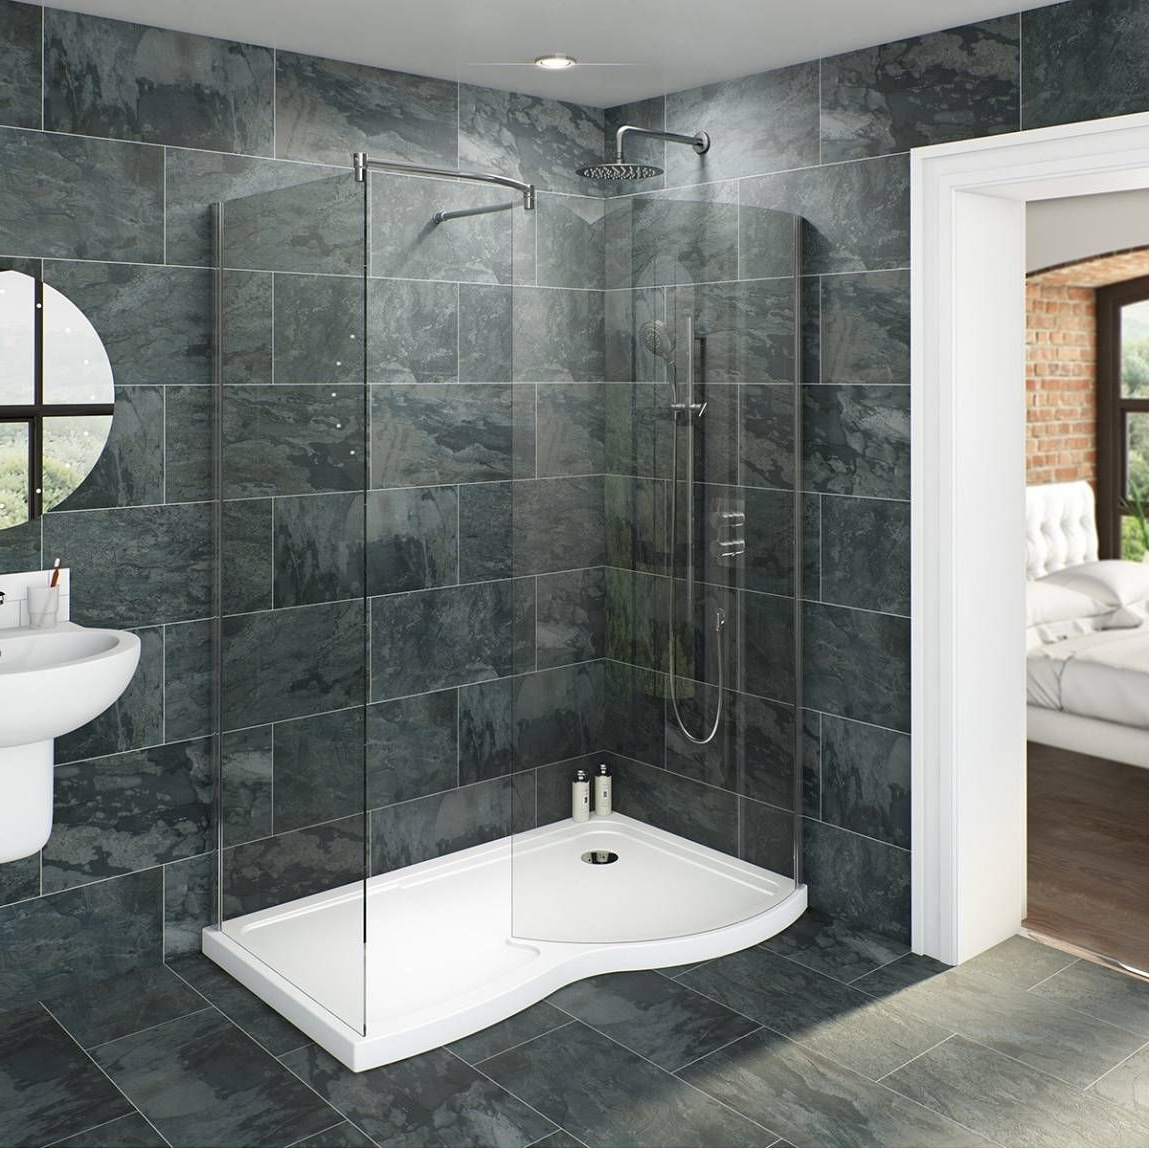 Make A Real Statement With A Walk In Shower Or Wet Room 10+ Bathroom Enclosure Designs Ideas